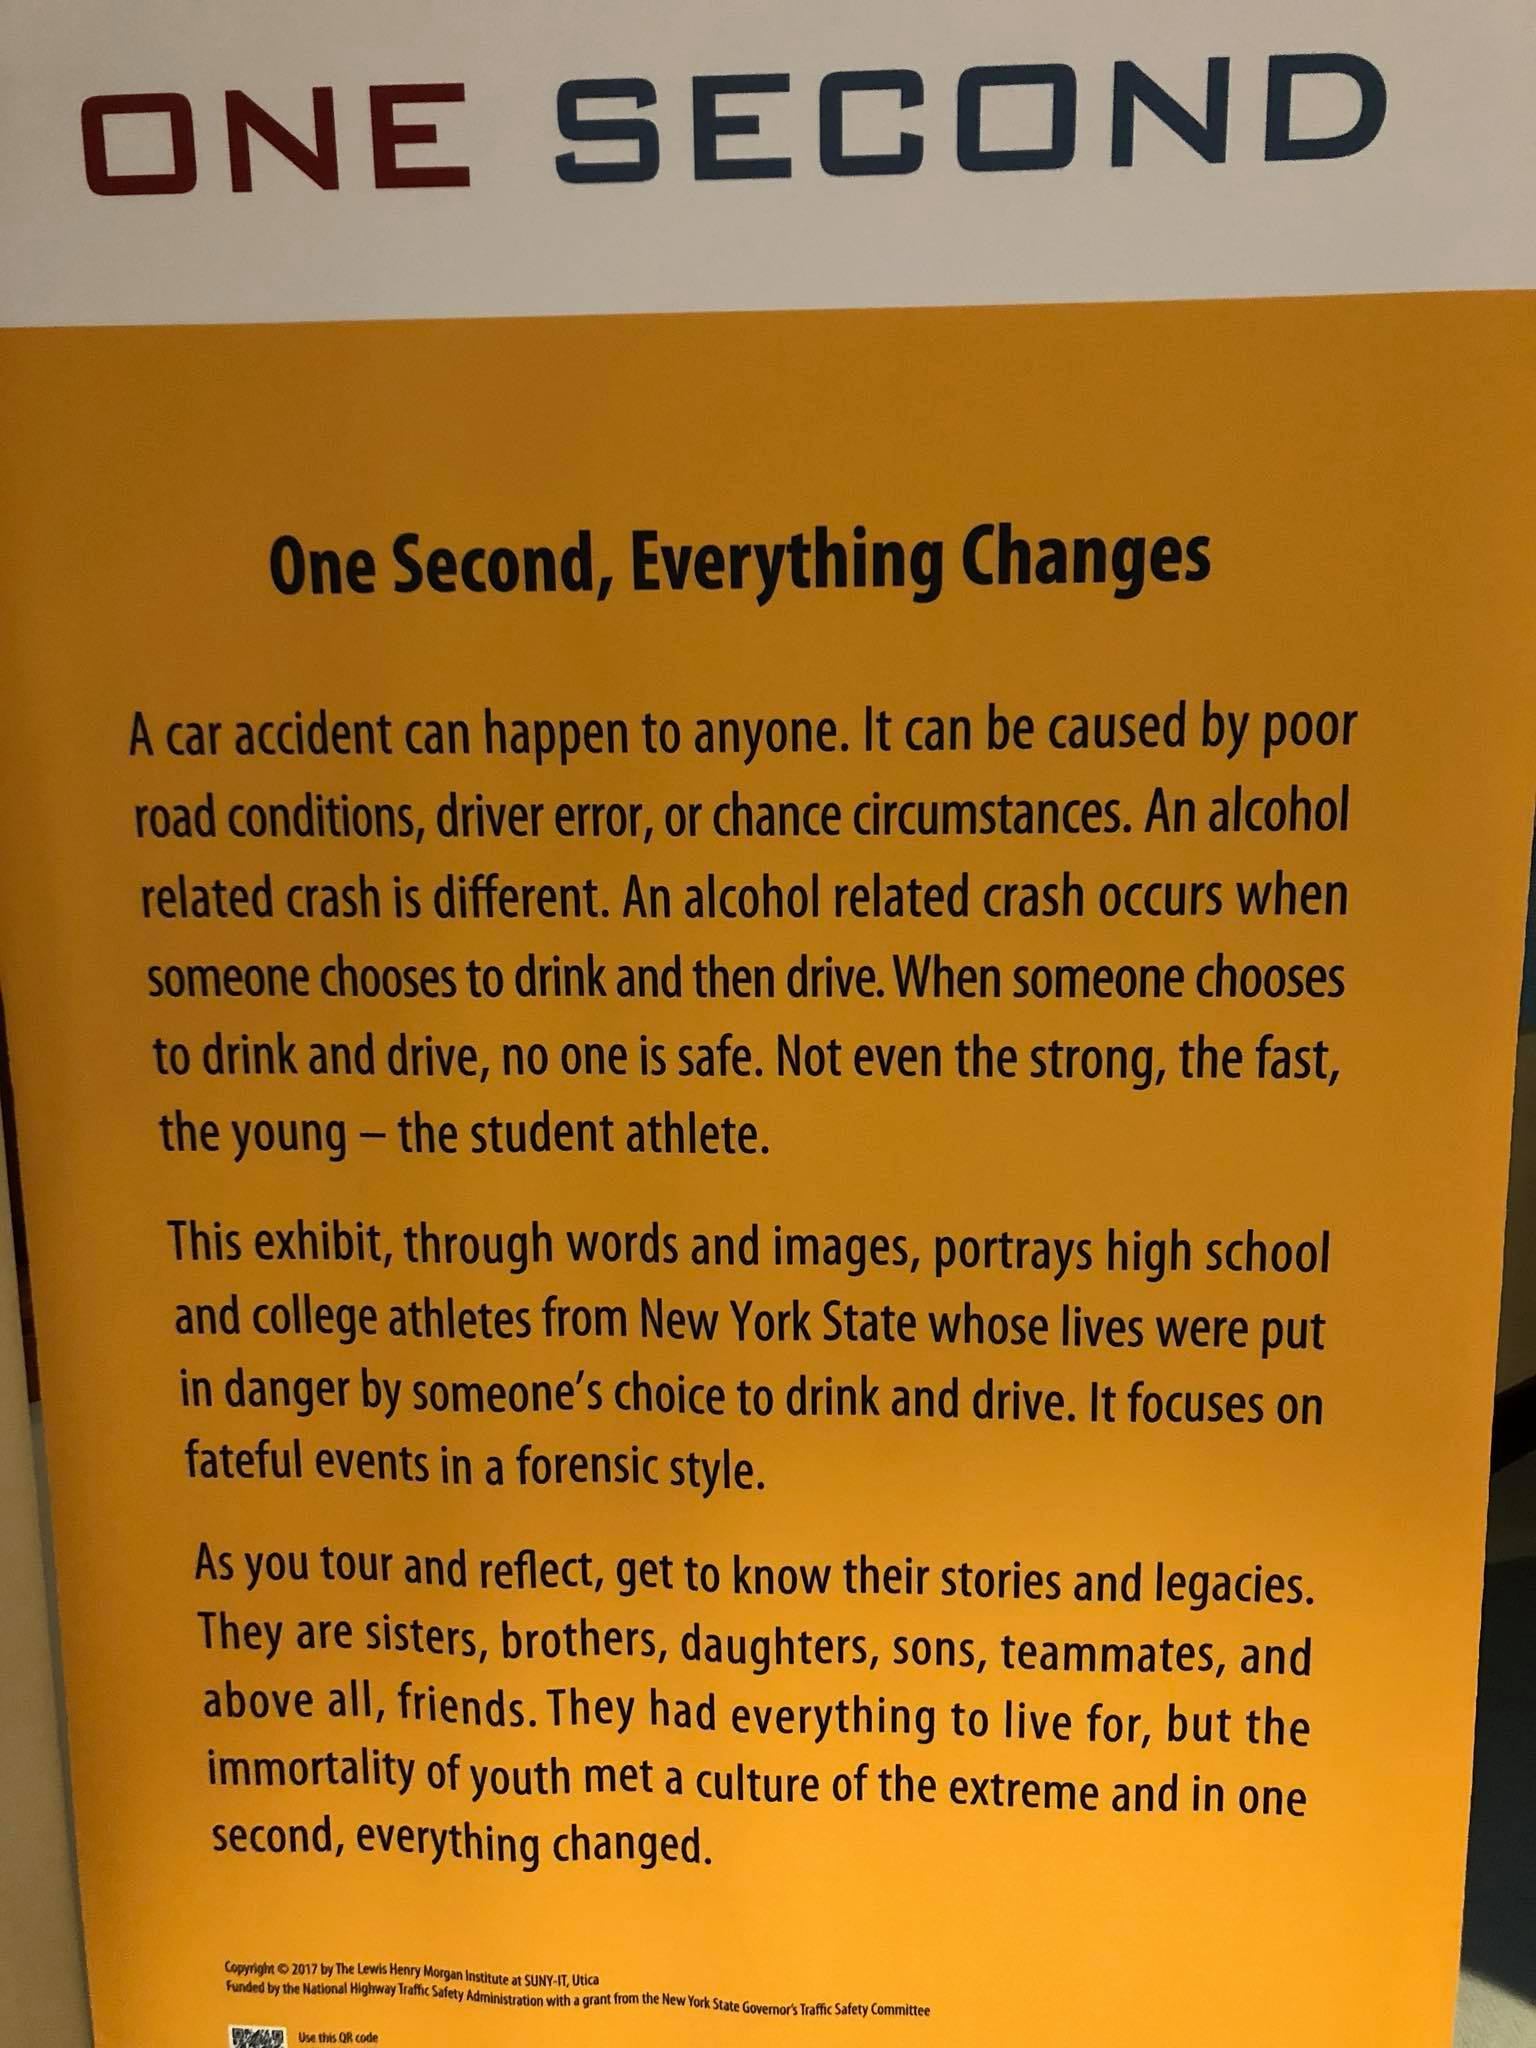 One Second Changes Everything